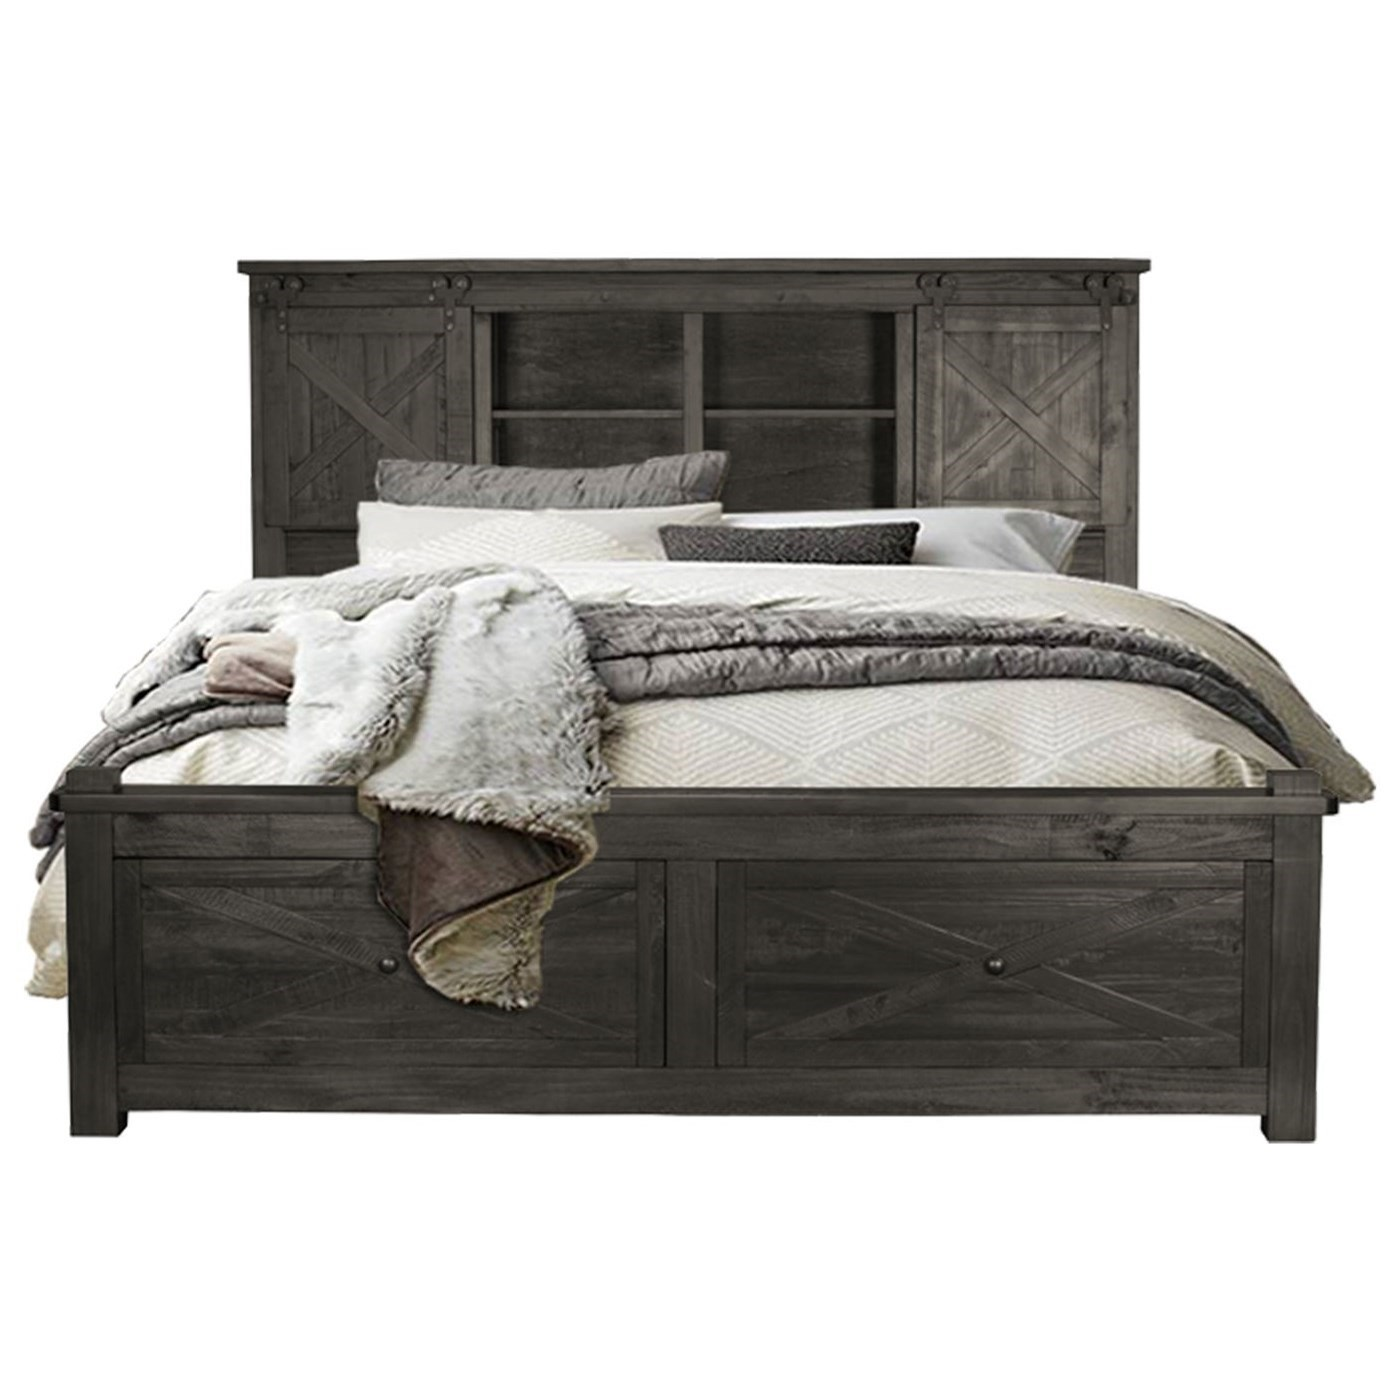 Aamerica Sun Valley Suv Cl 5 23 1 California King Bed With Footboard Storage Coconis Furniture Mattress 1st Panel Beds